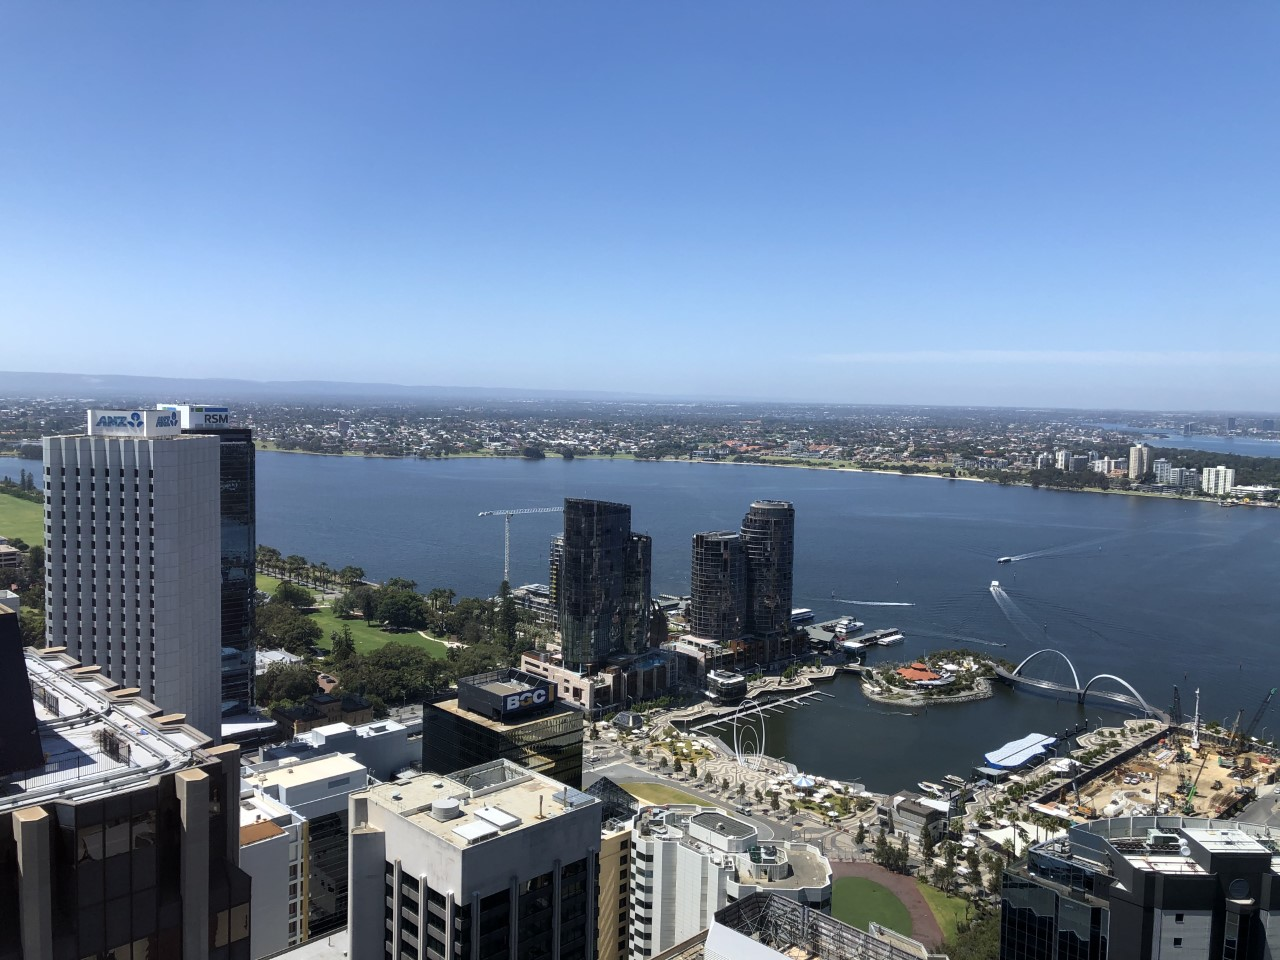 Australian Businesses - Perth skyline from WeWork office